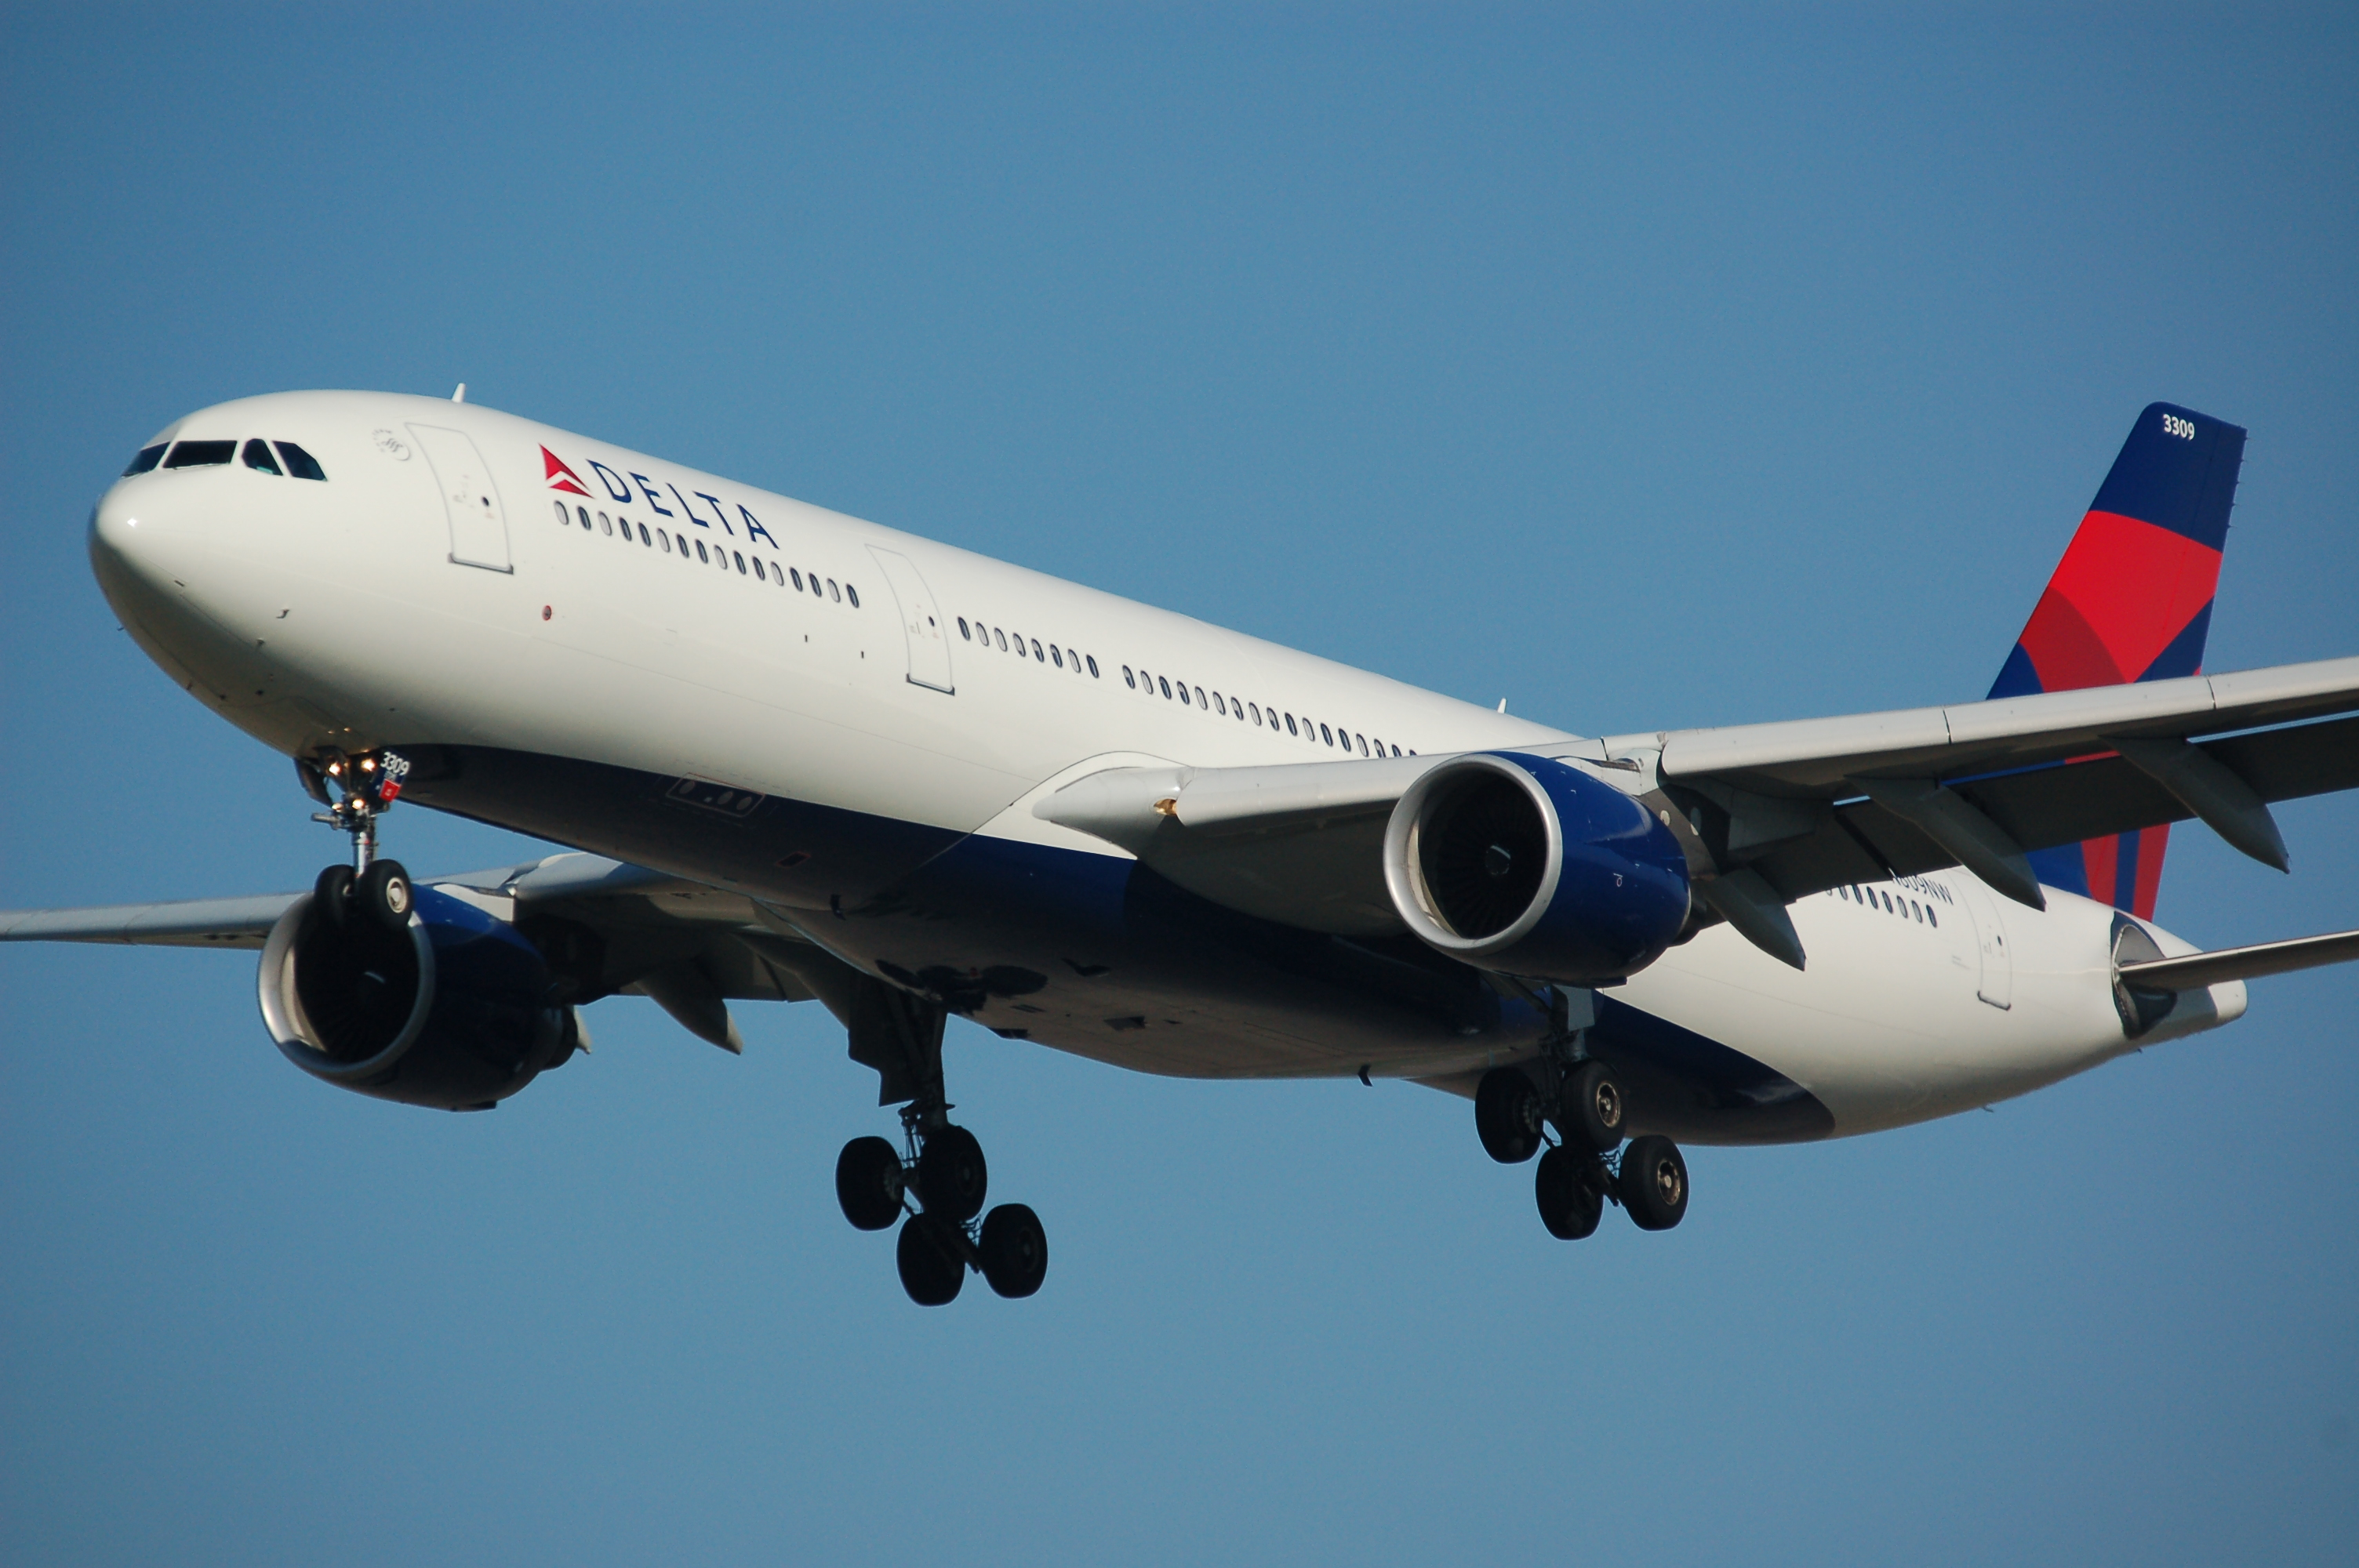 Delta Portland To Amsterdam In Economy: A Review - Points